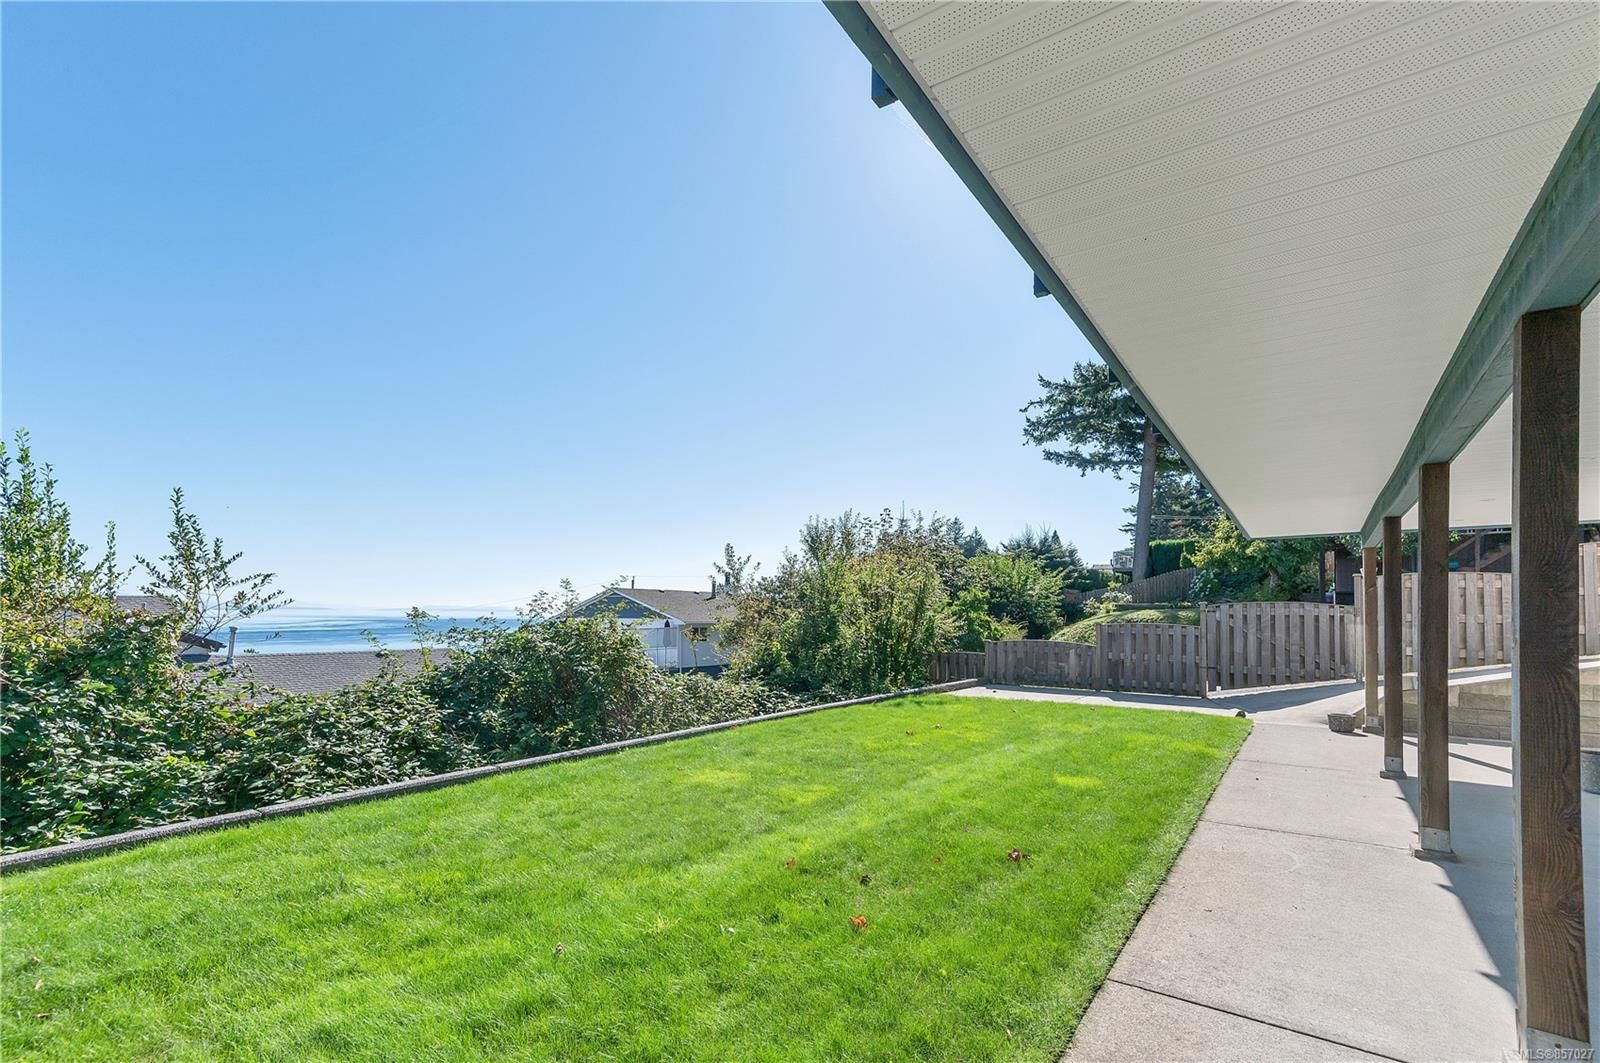 Photo 52: Photos: 253 S Alder St in : CR Campbell River South House for sale (Campbell River)  : MLS®# 857027